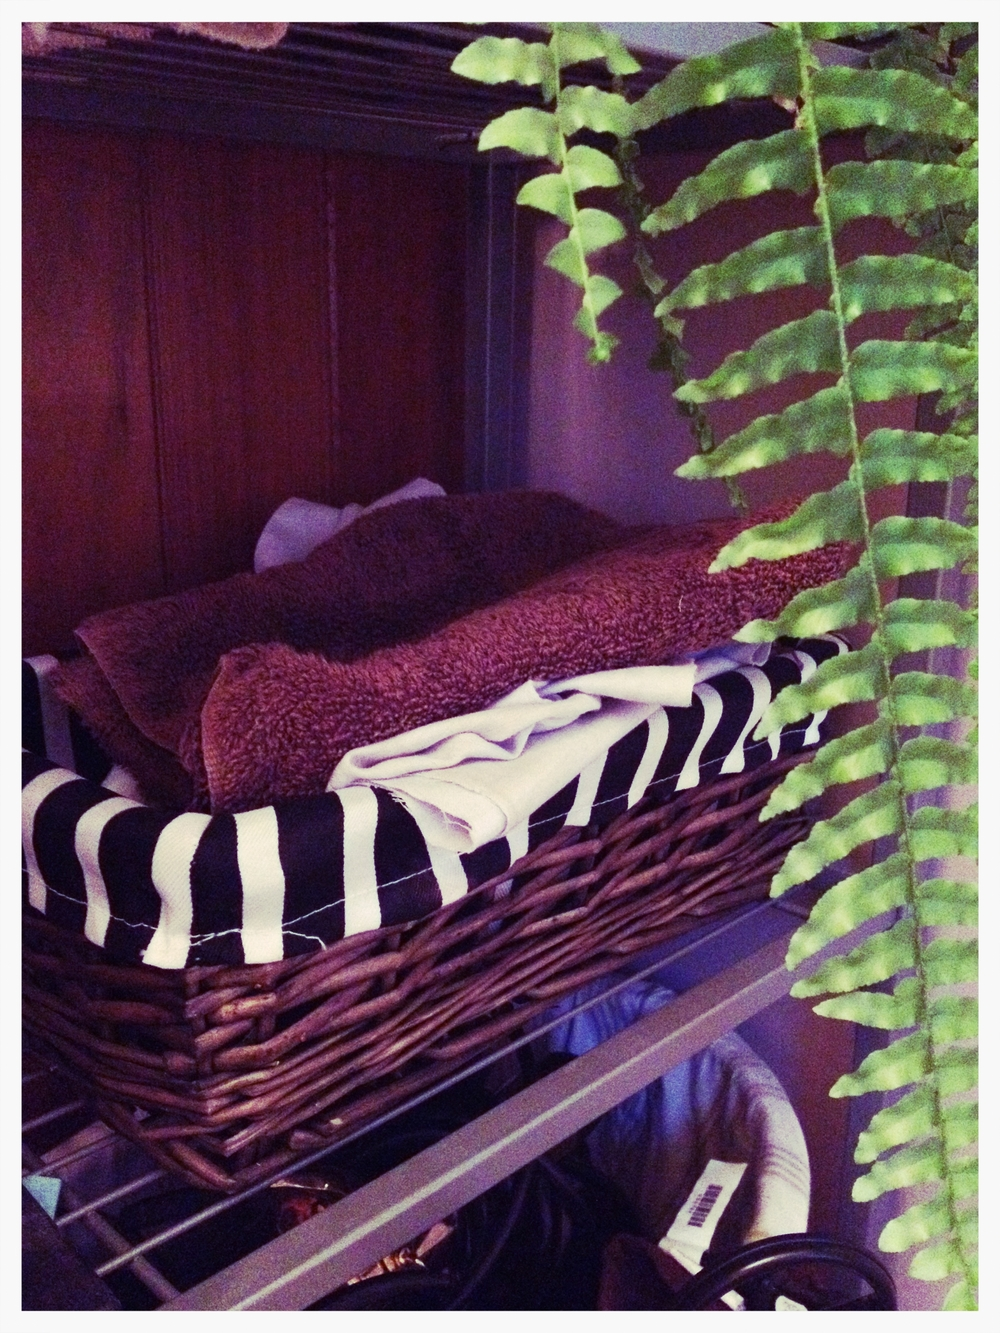 The rag-stash in the bathroom. And a fern photo bomb.